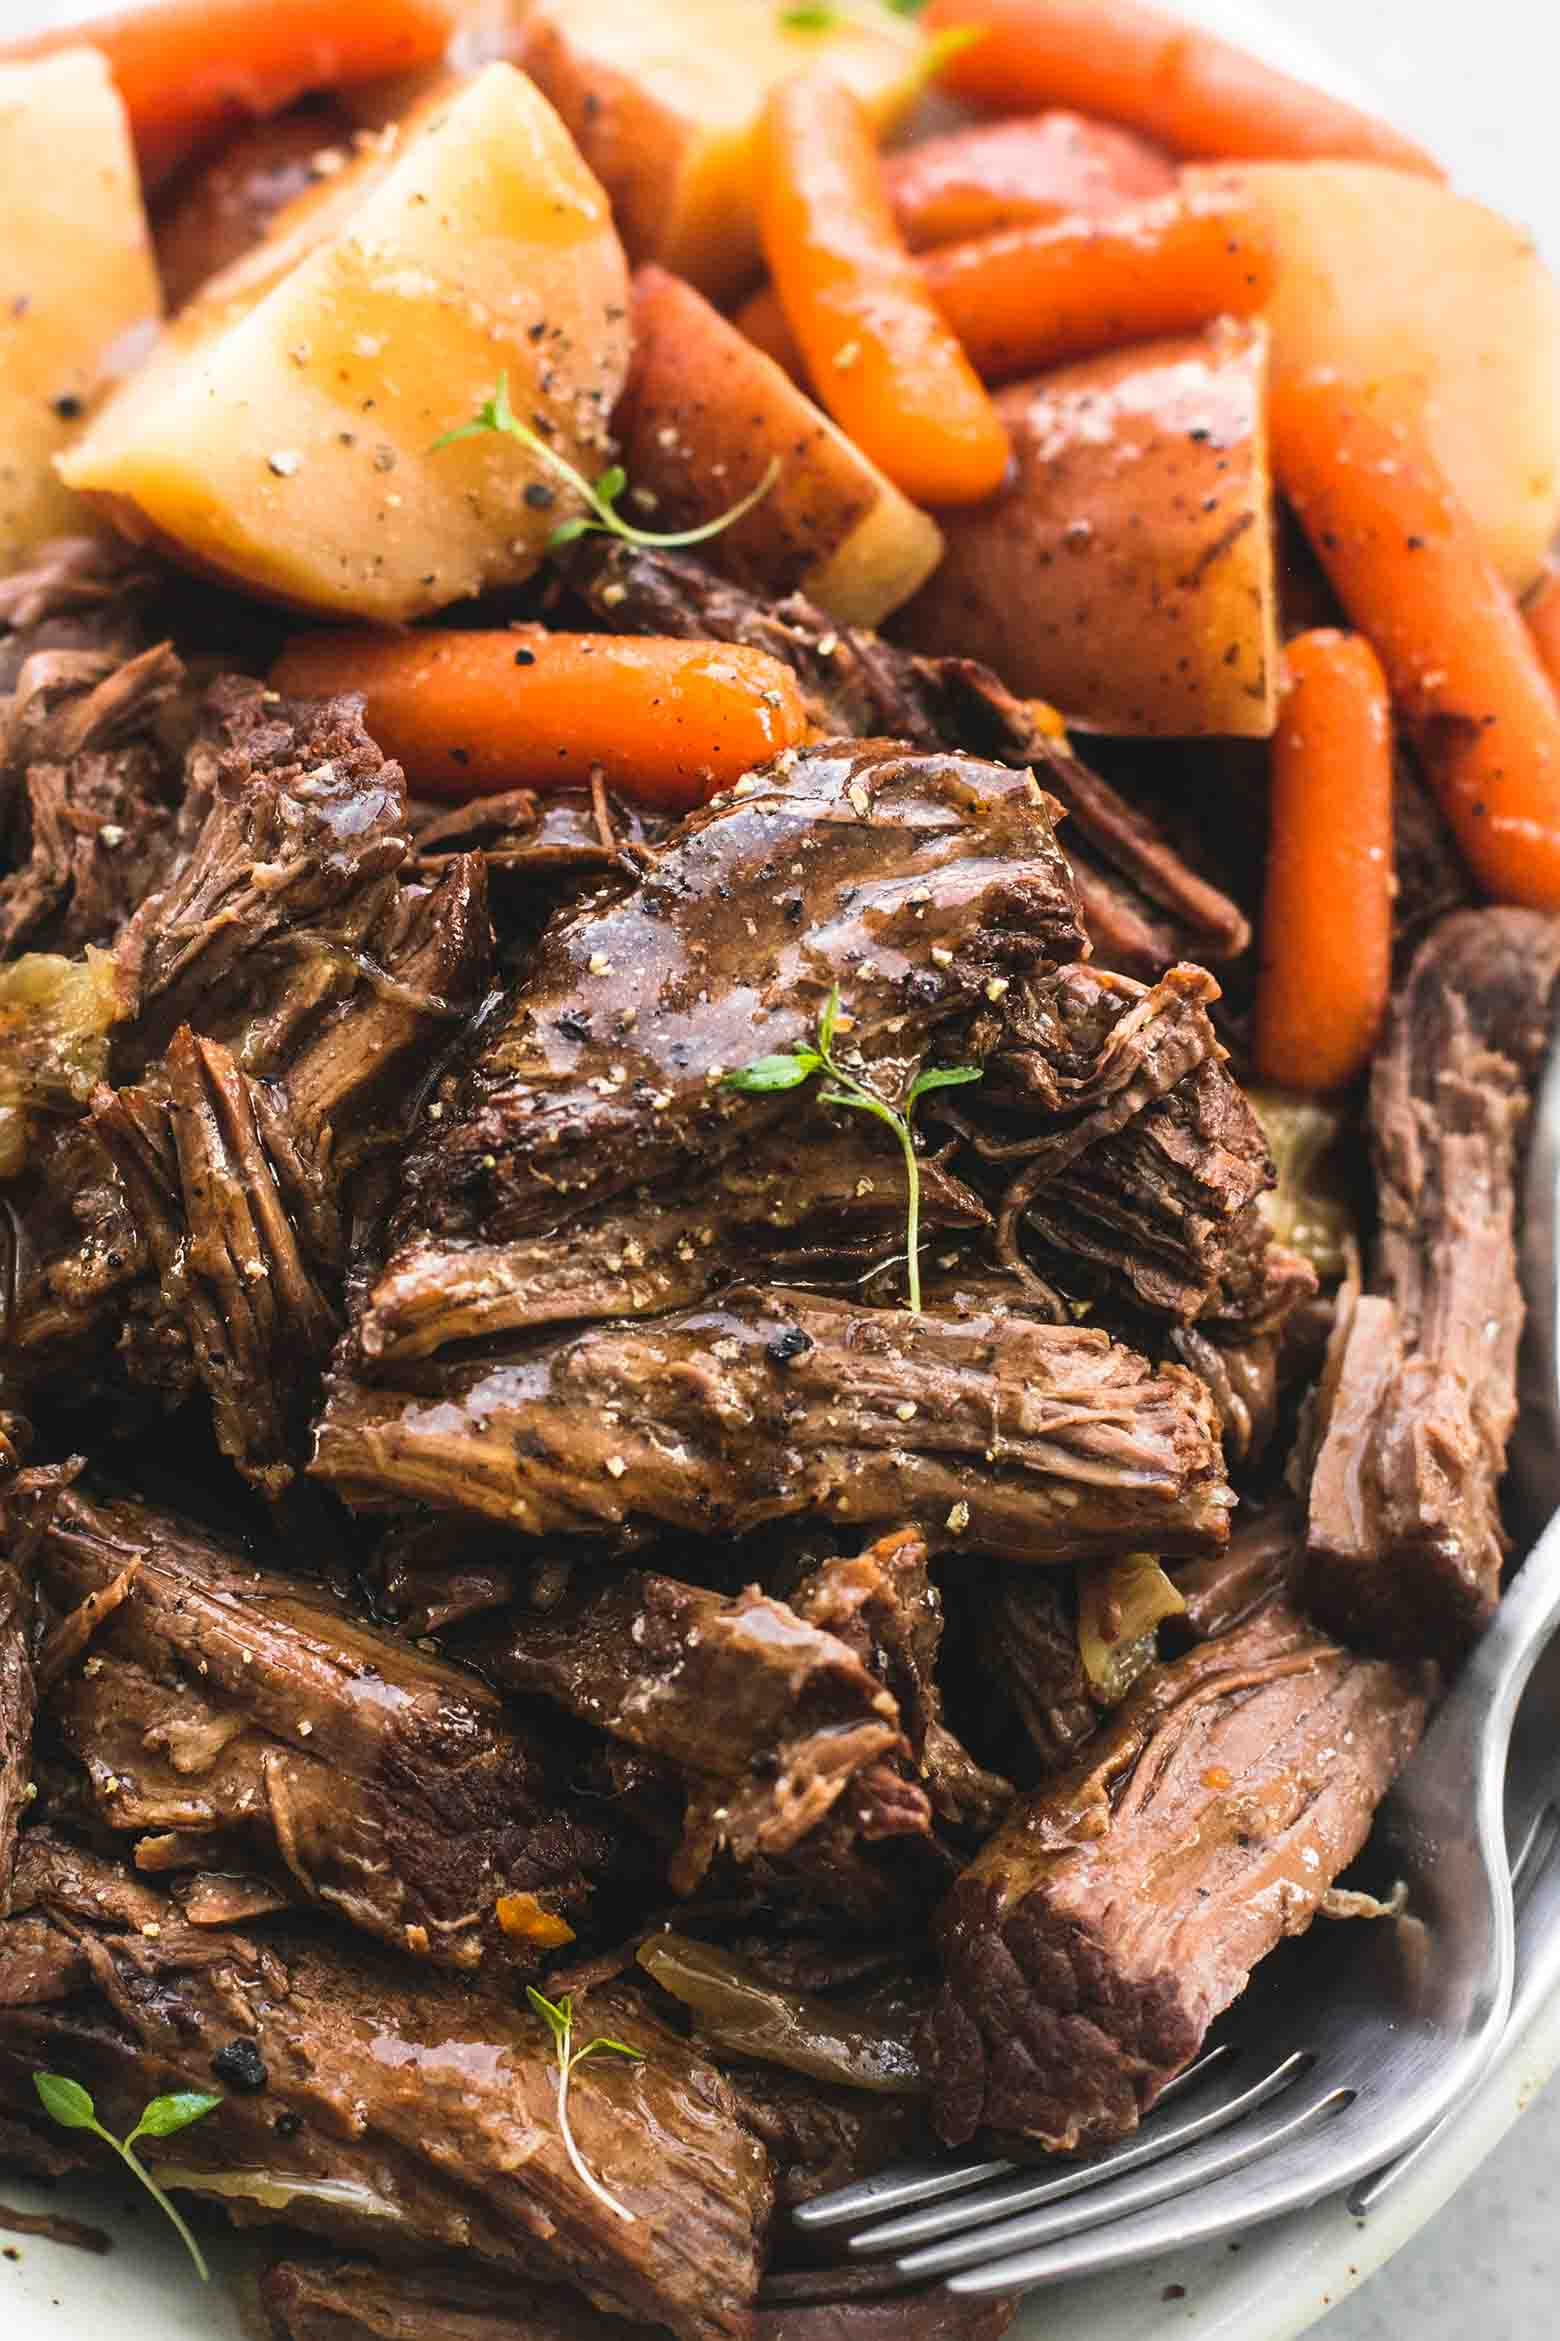 Fairy Tale Pot Roast with carrots and potatoes.